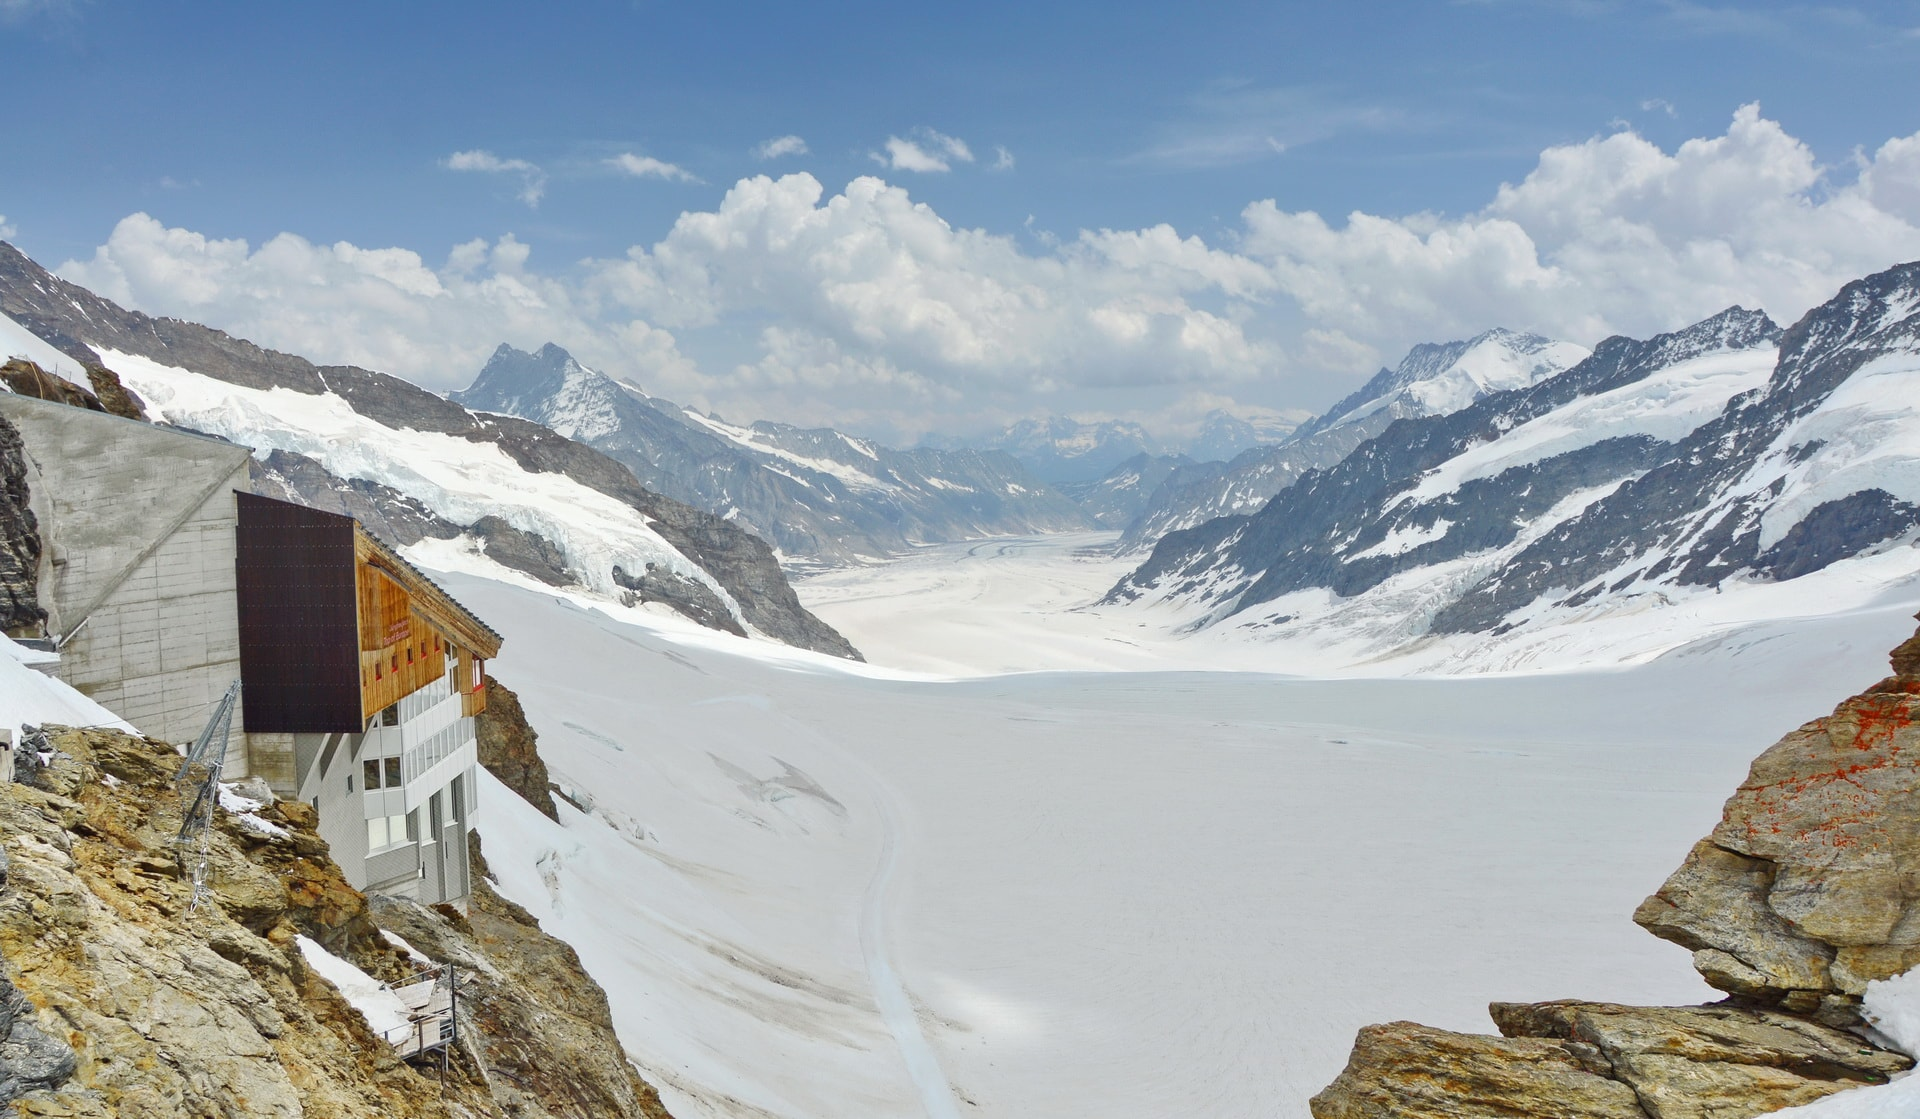 The Great Aletsch Glacier